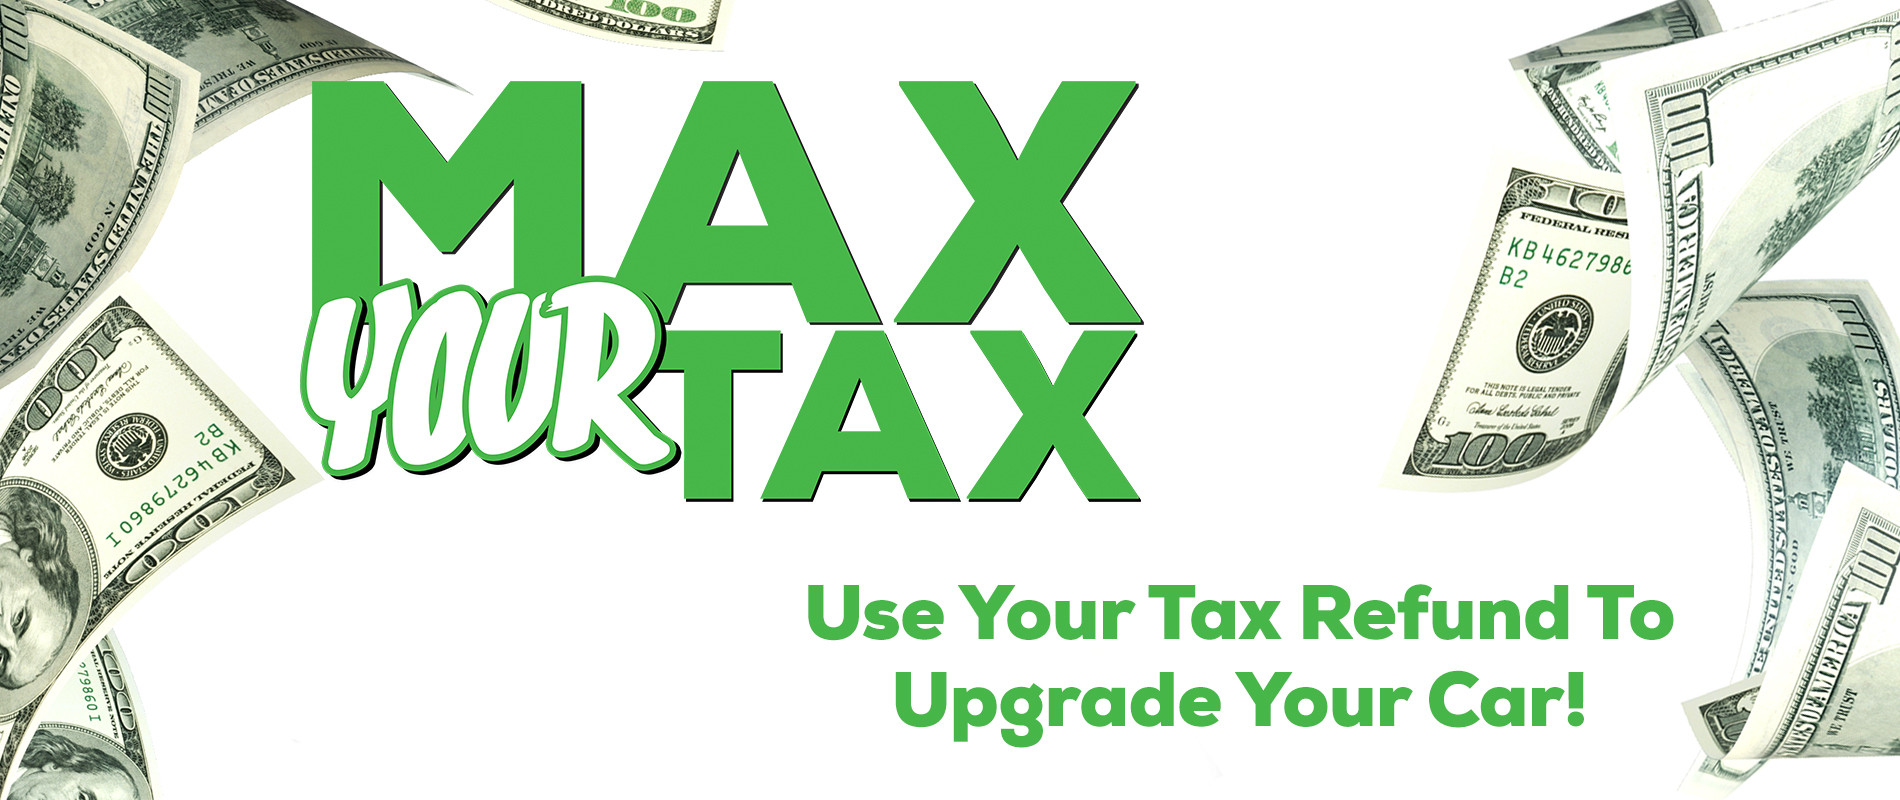 WebSliders_1900x800_ Max Your Tax _2020.